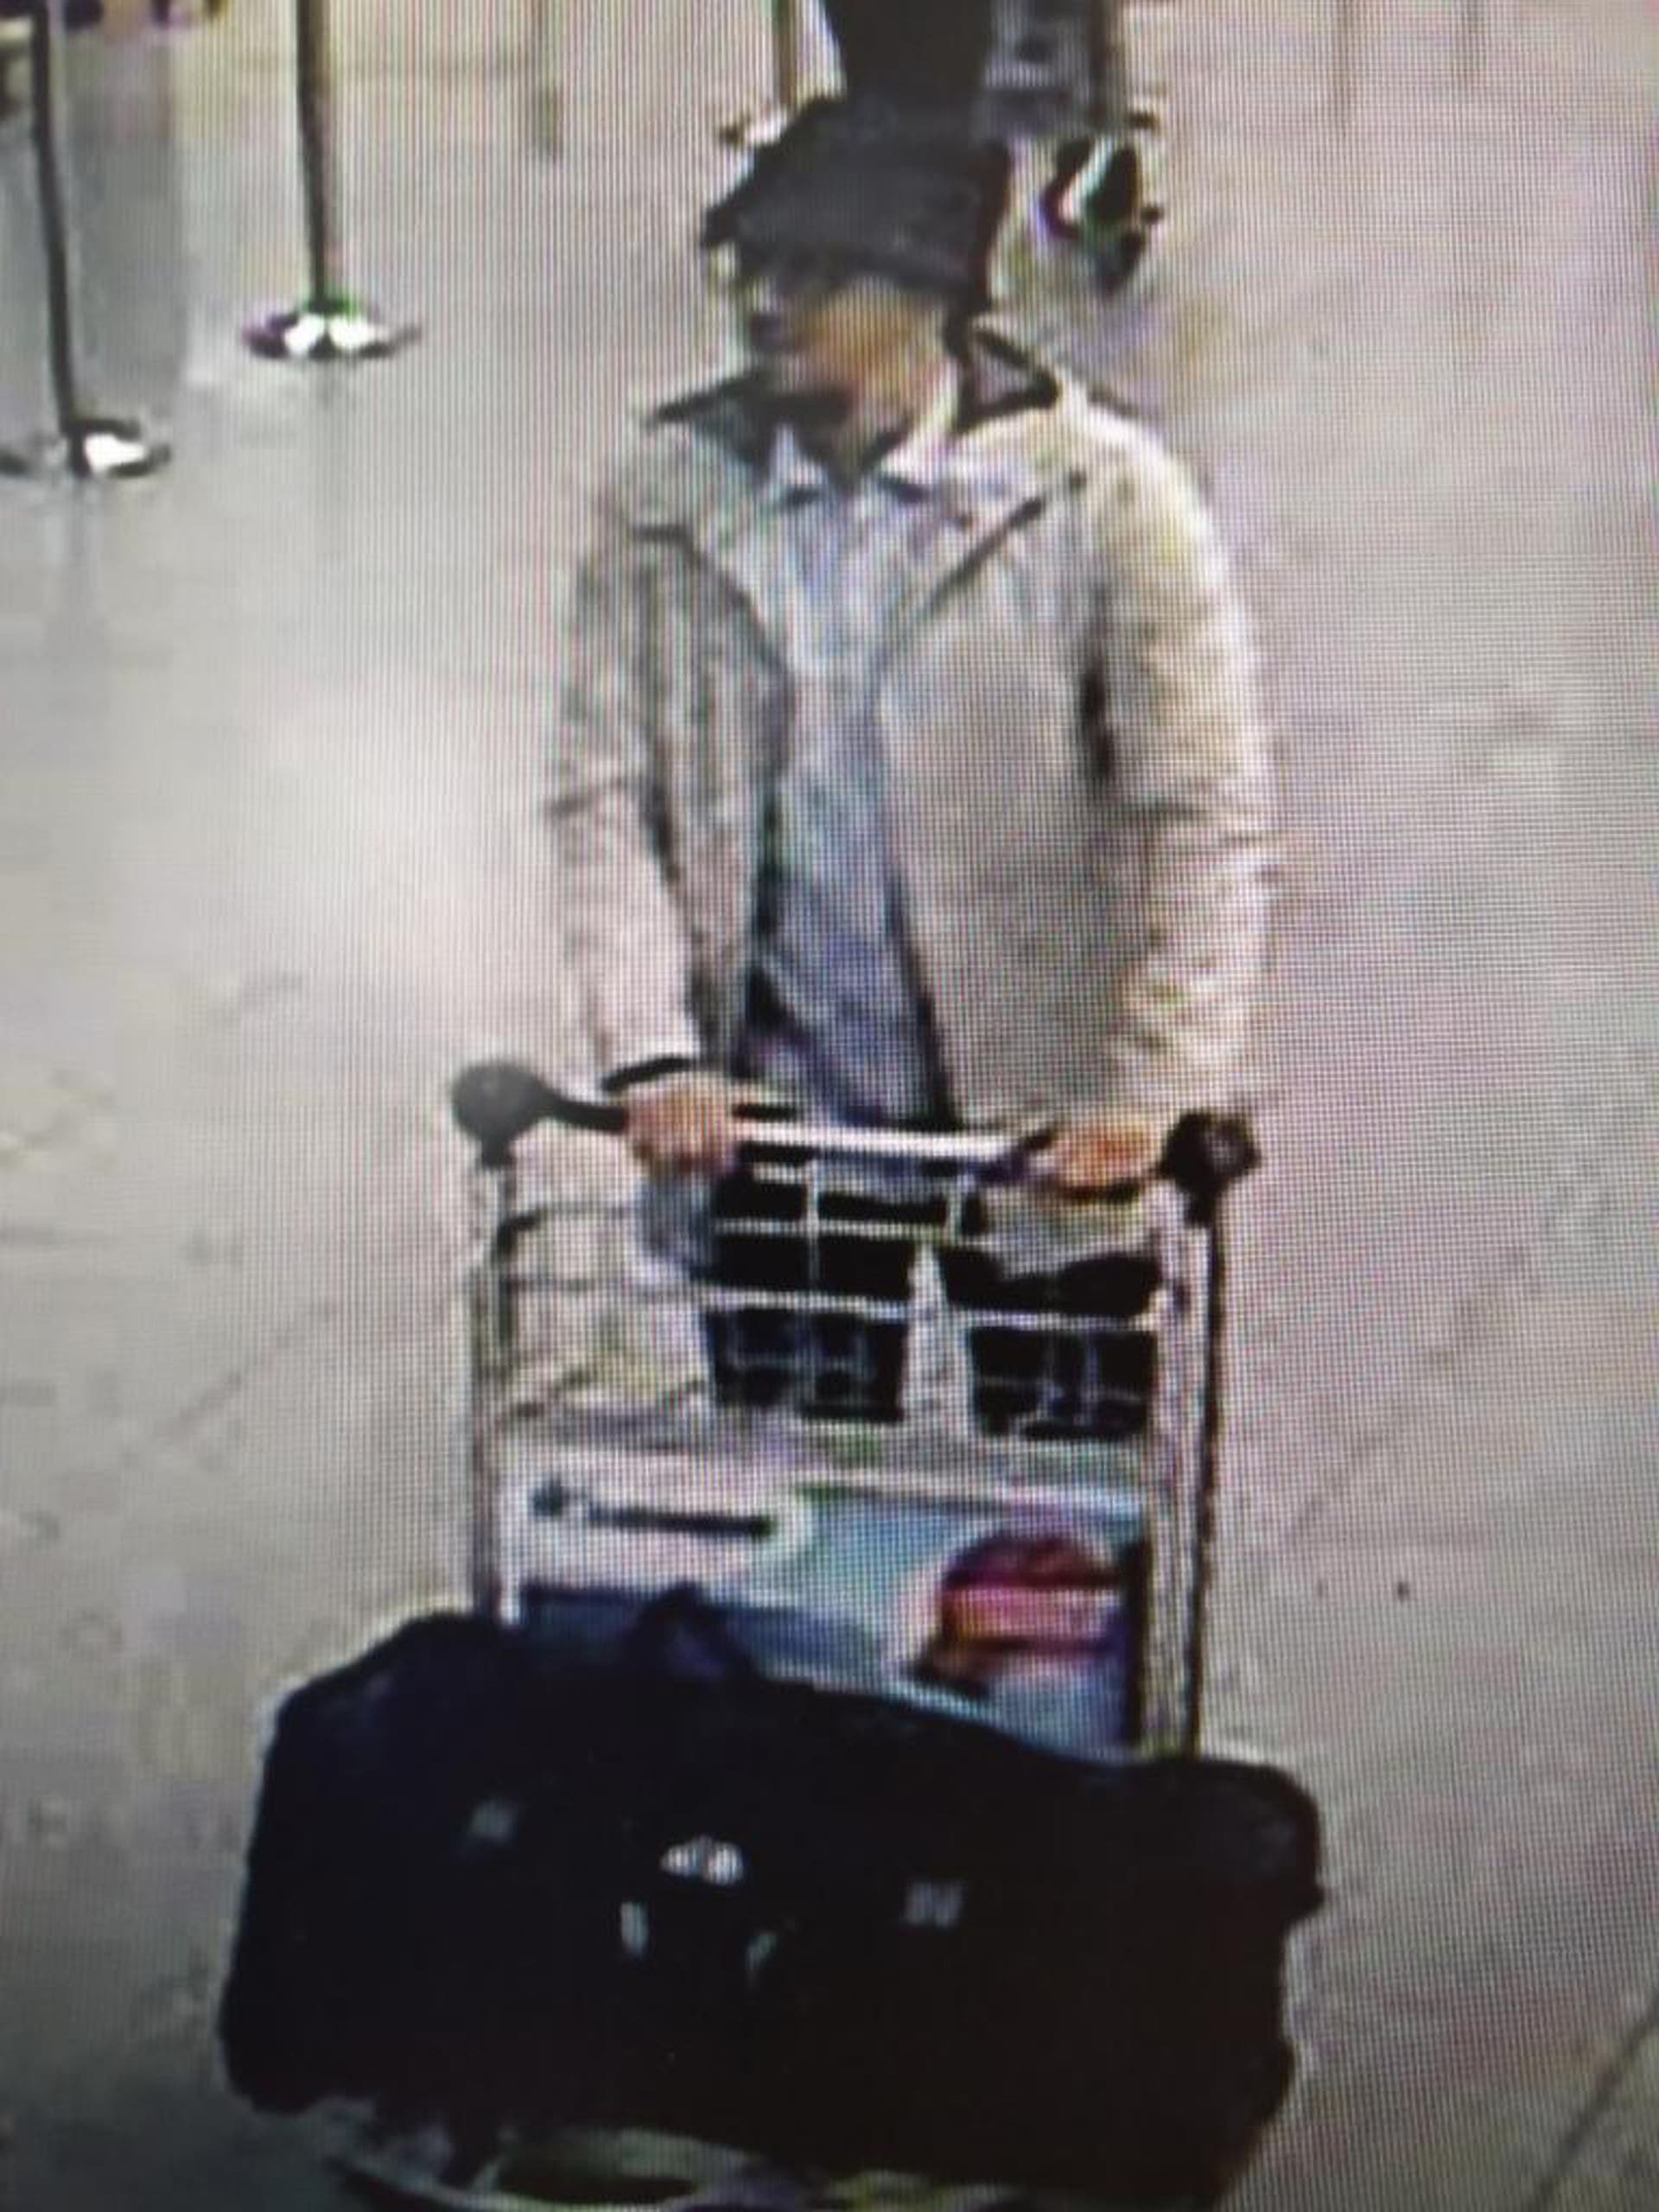 Police issued a wanted notice for a man suspected of involvement in Tuesday's bomb attacks at Brussels airport. (AP)